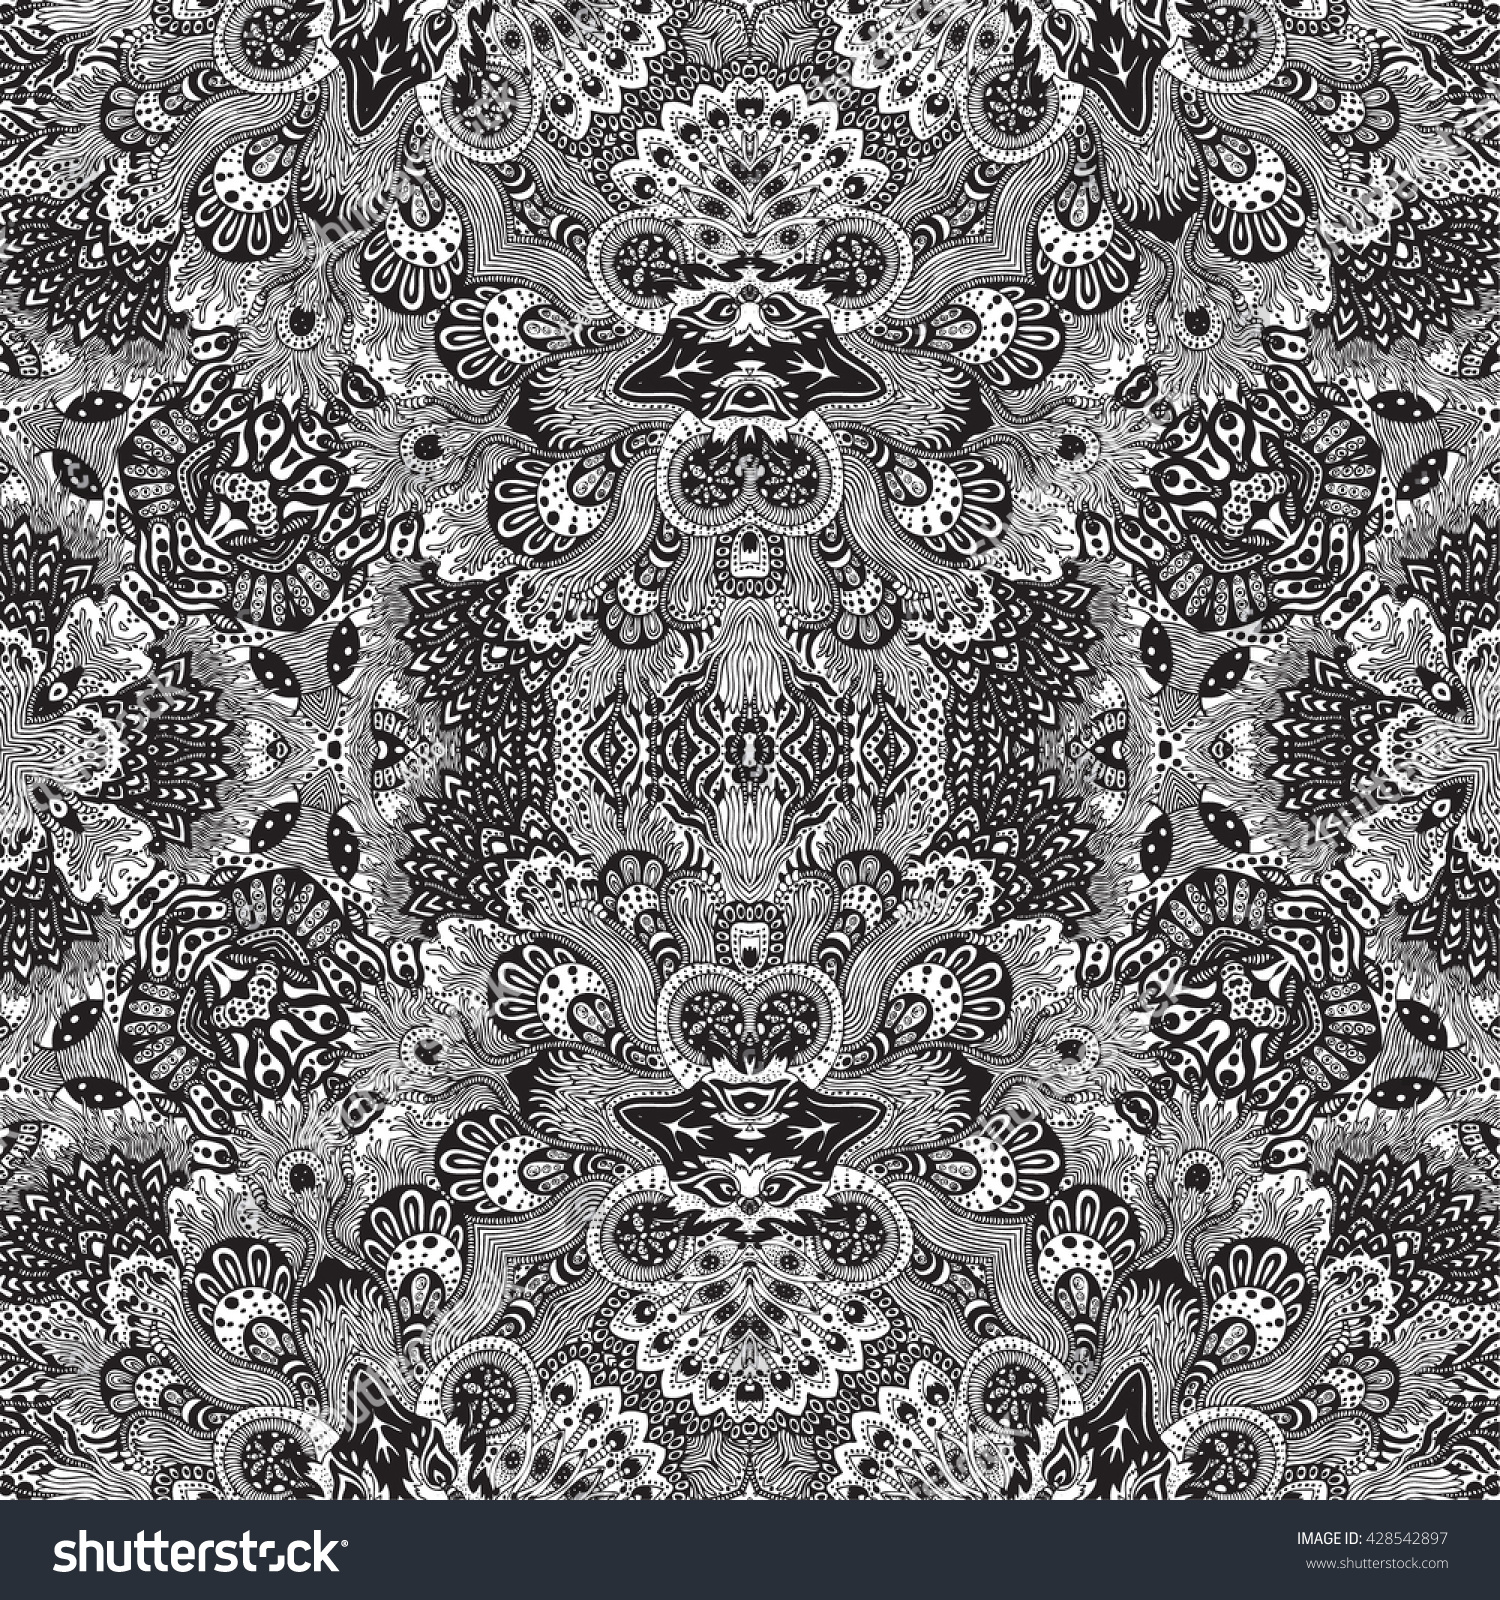 The beautiful of art fabric Batik Pattern in black and white background